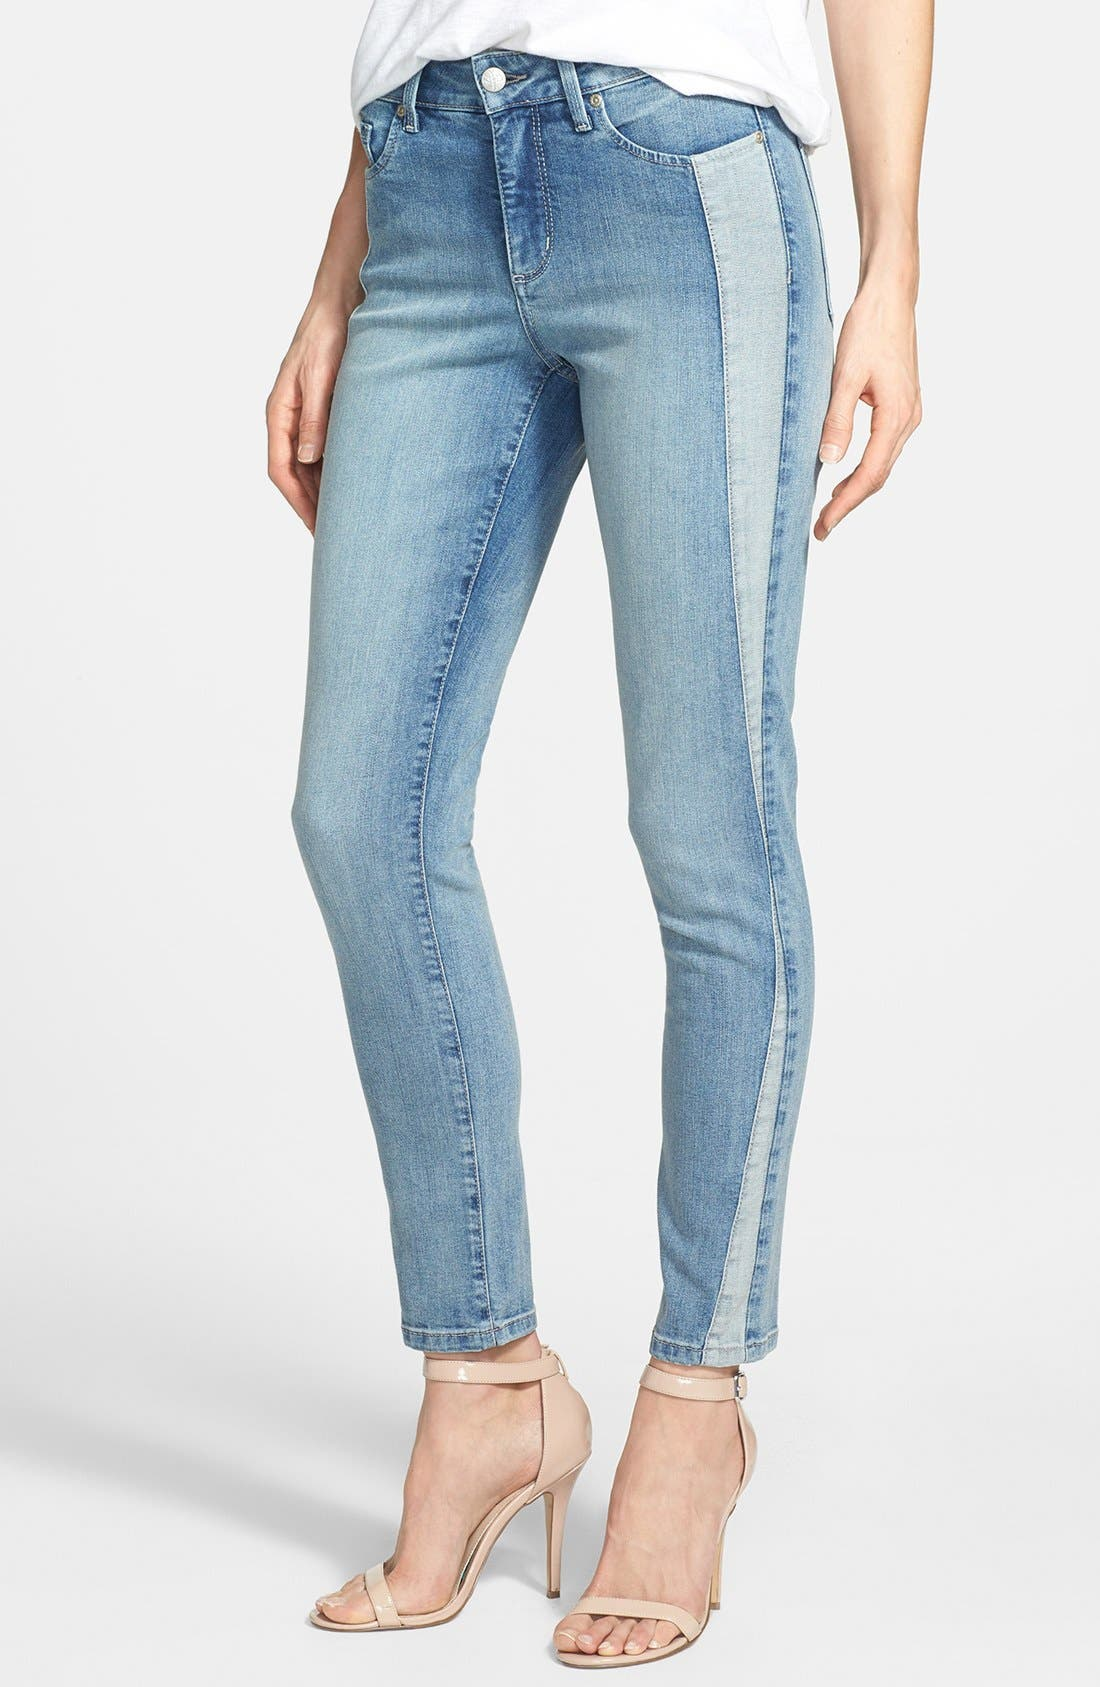 Main Image - NYDJ 'Annalynn' Side Inset Stretch Skinny Jeans (Stockton) (Regular & Petite)